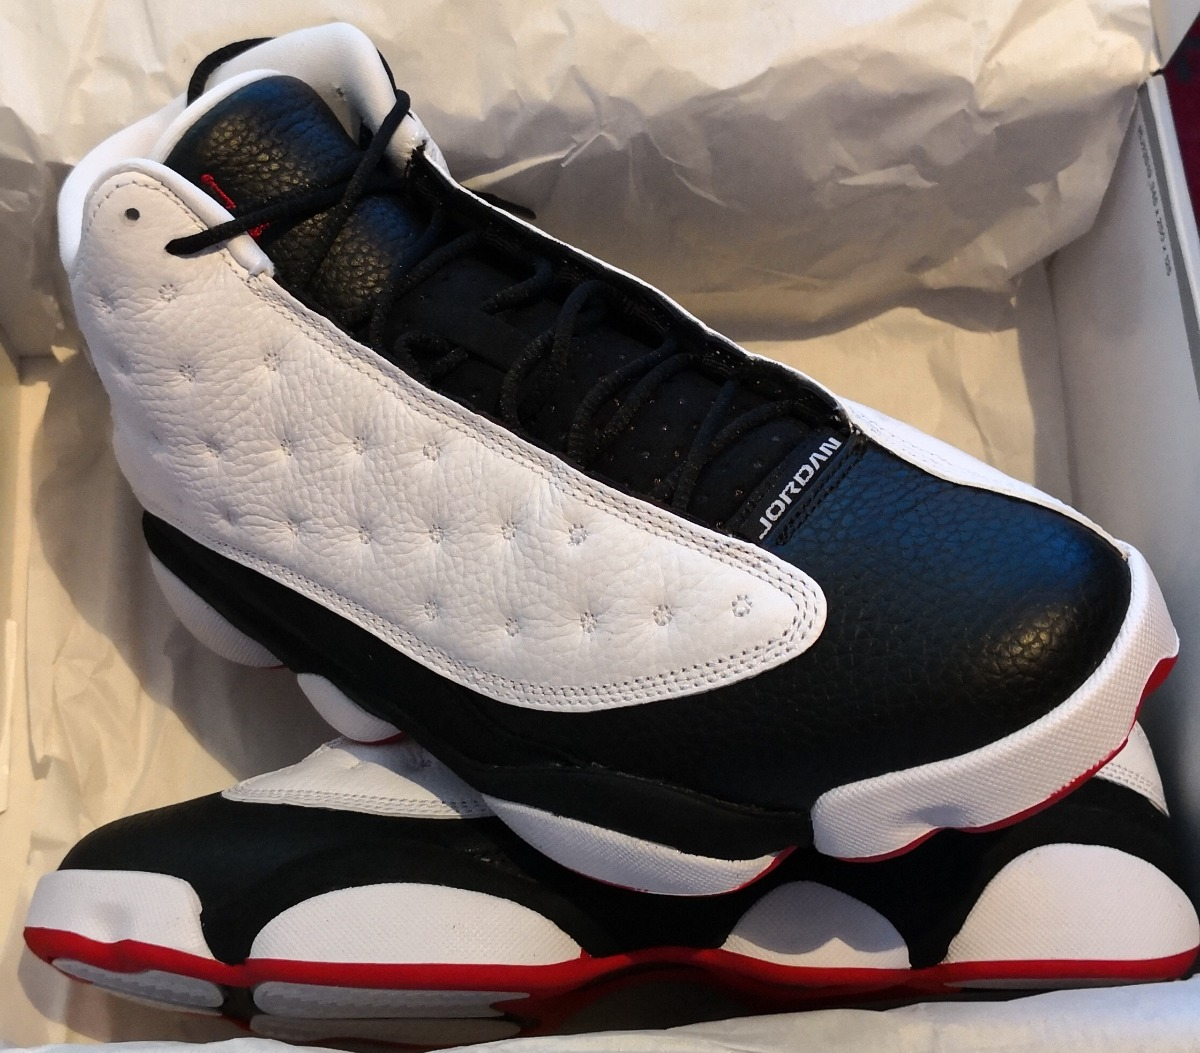 sports shoes d7dbd 37dd6 Air Jordan Xiii 13 He Got Game - 28.5 Cm